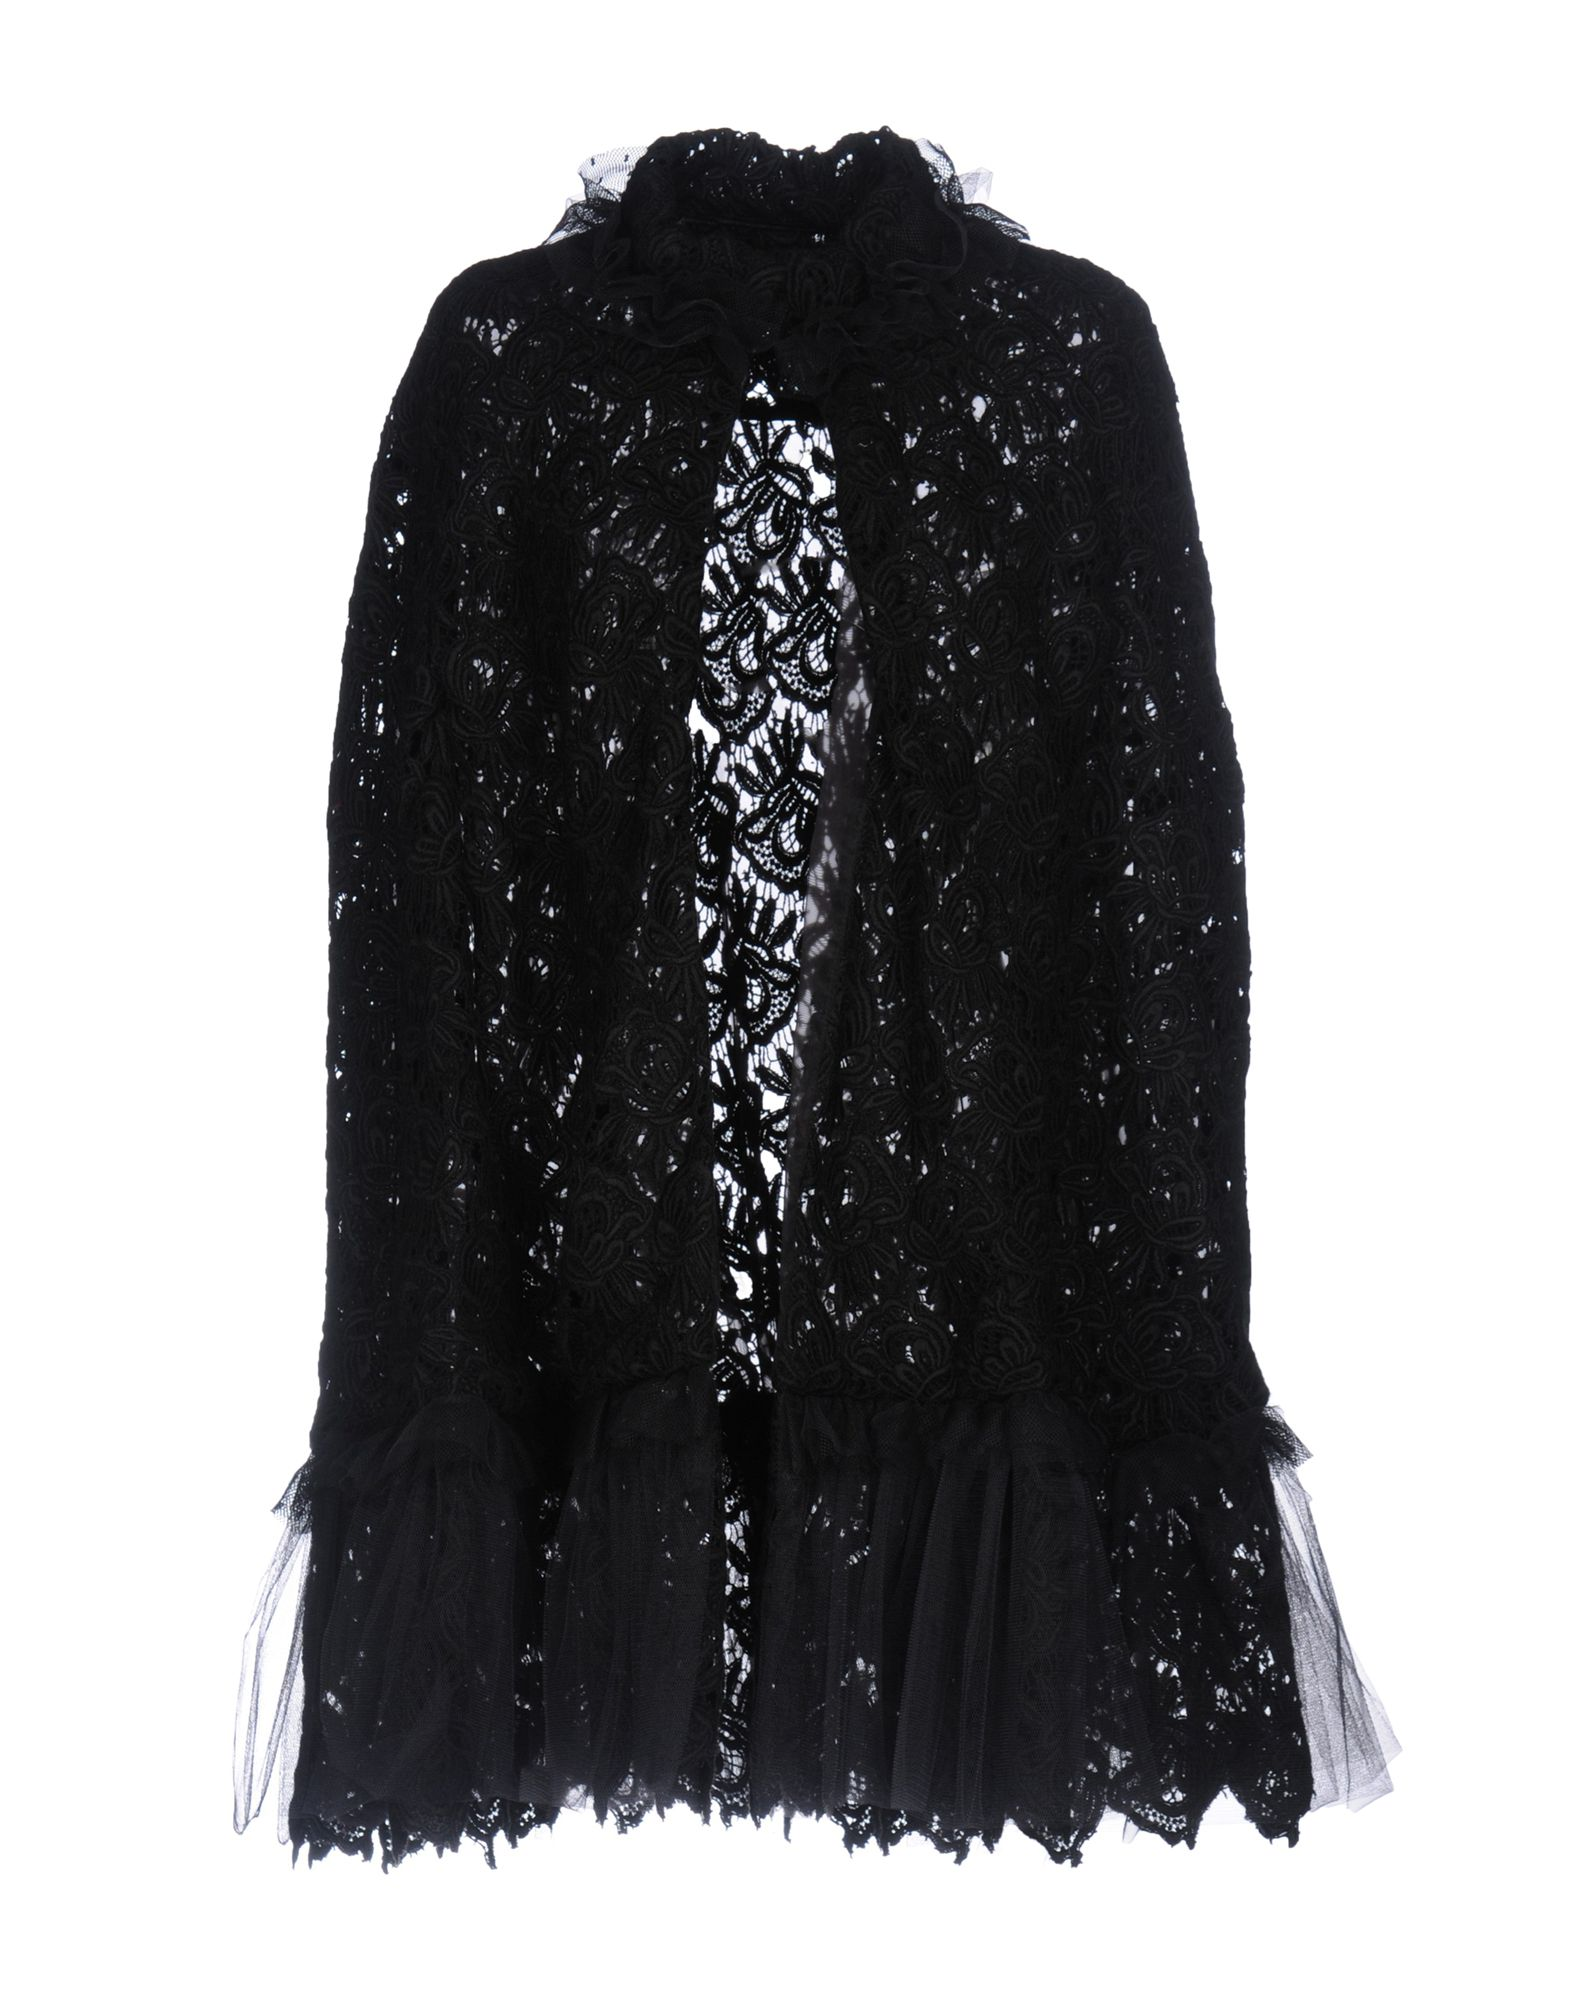 IO COUTURE Full-Length Jacket in Black